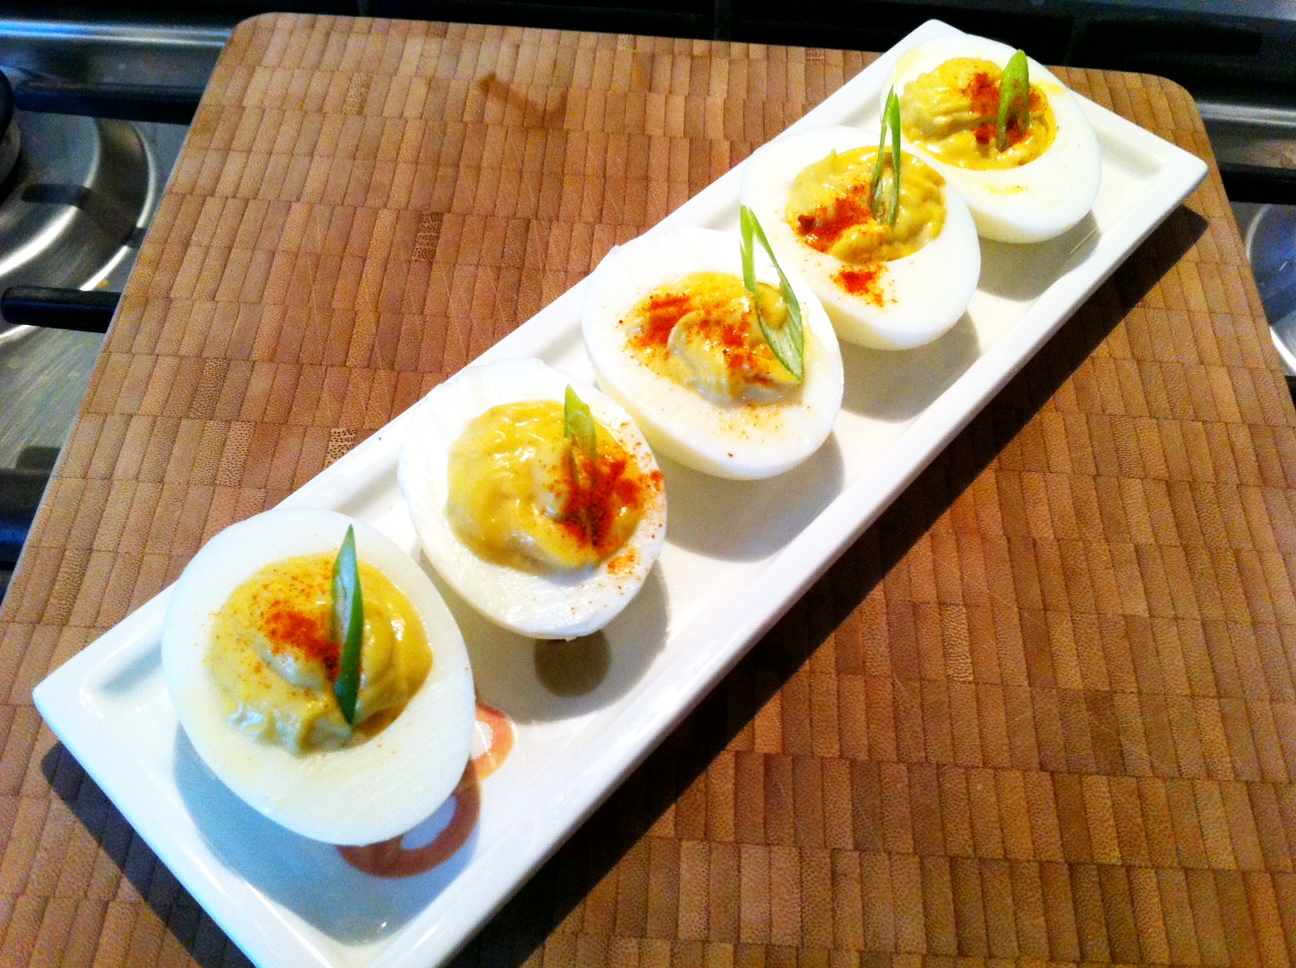 Devilled curried eggs without the salmon egg topping